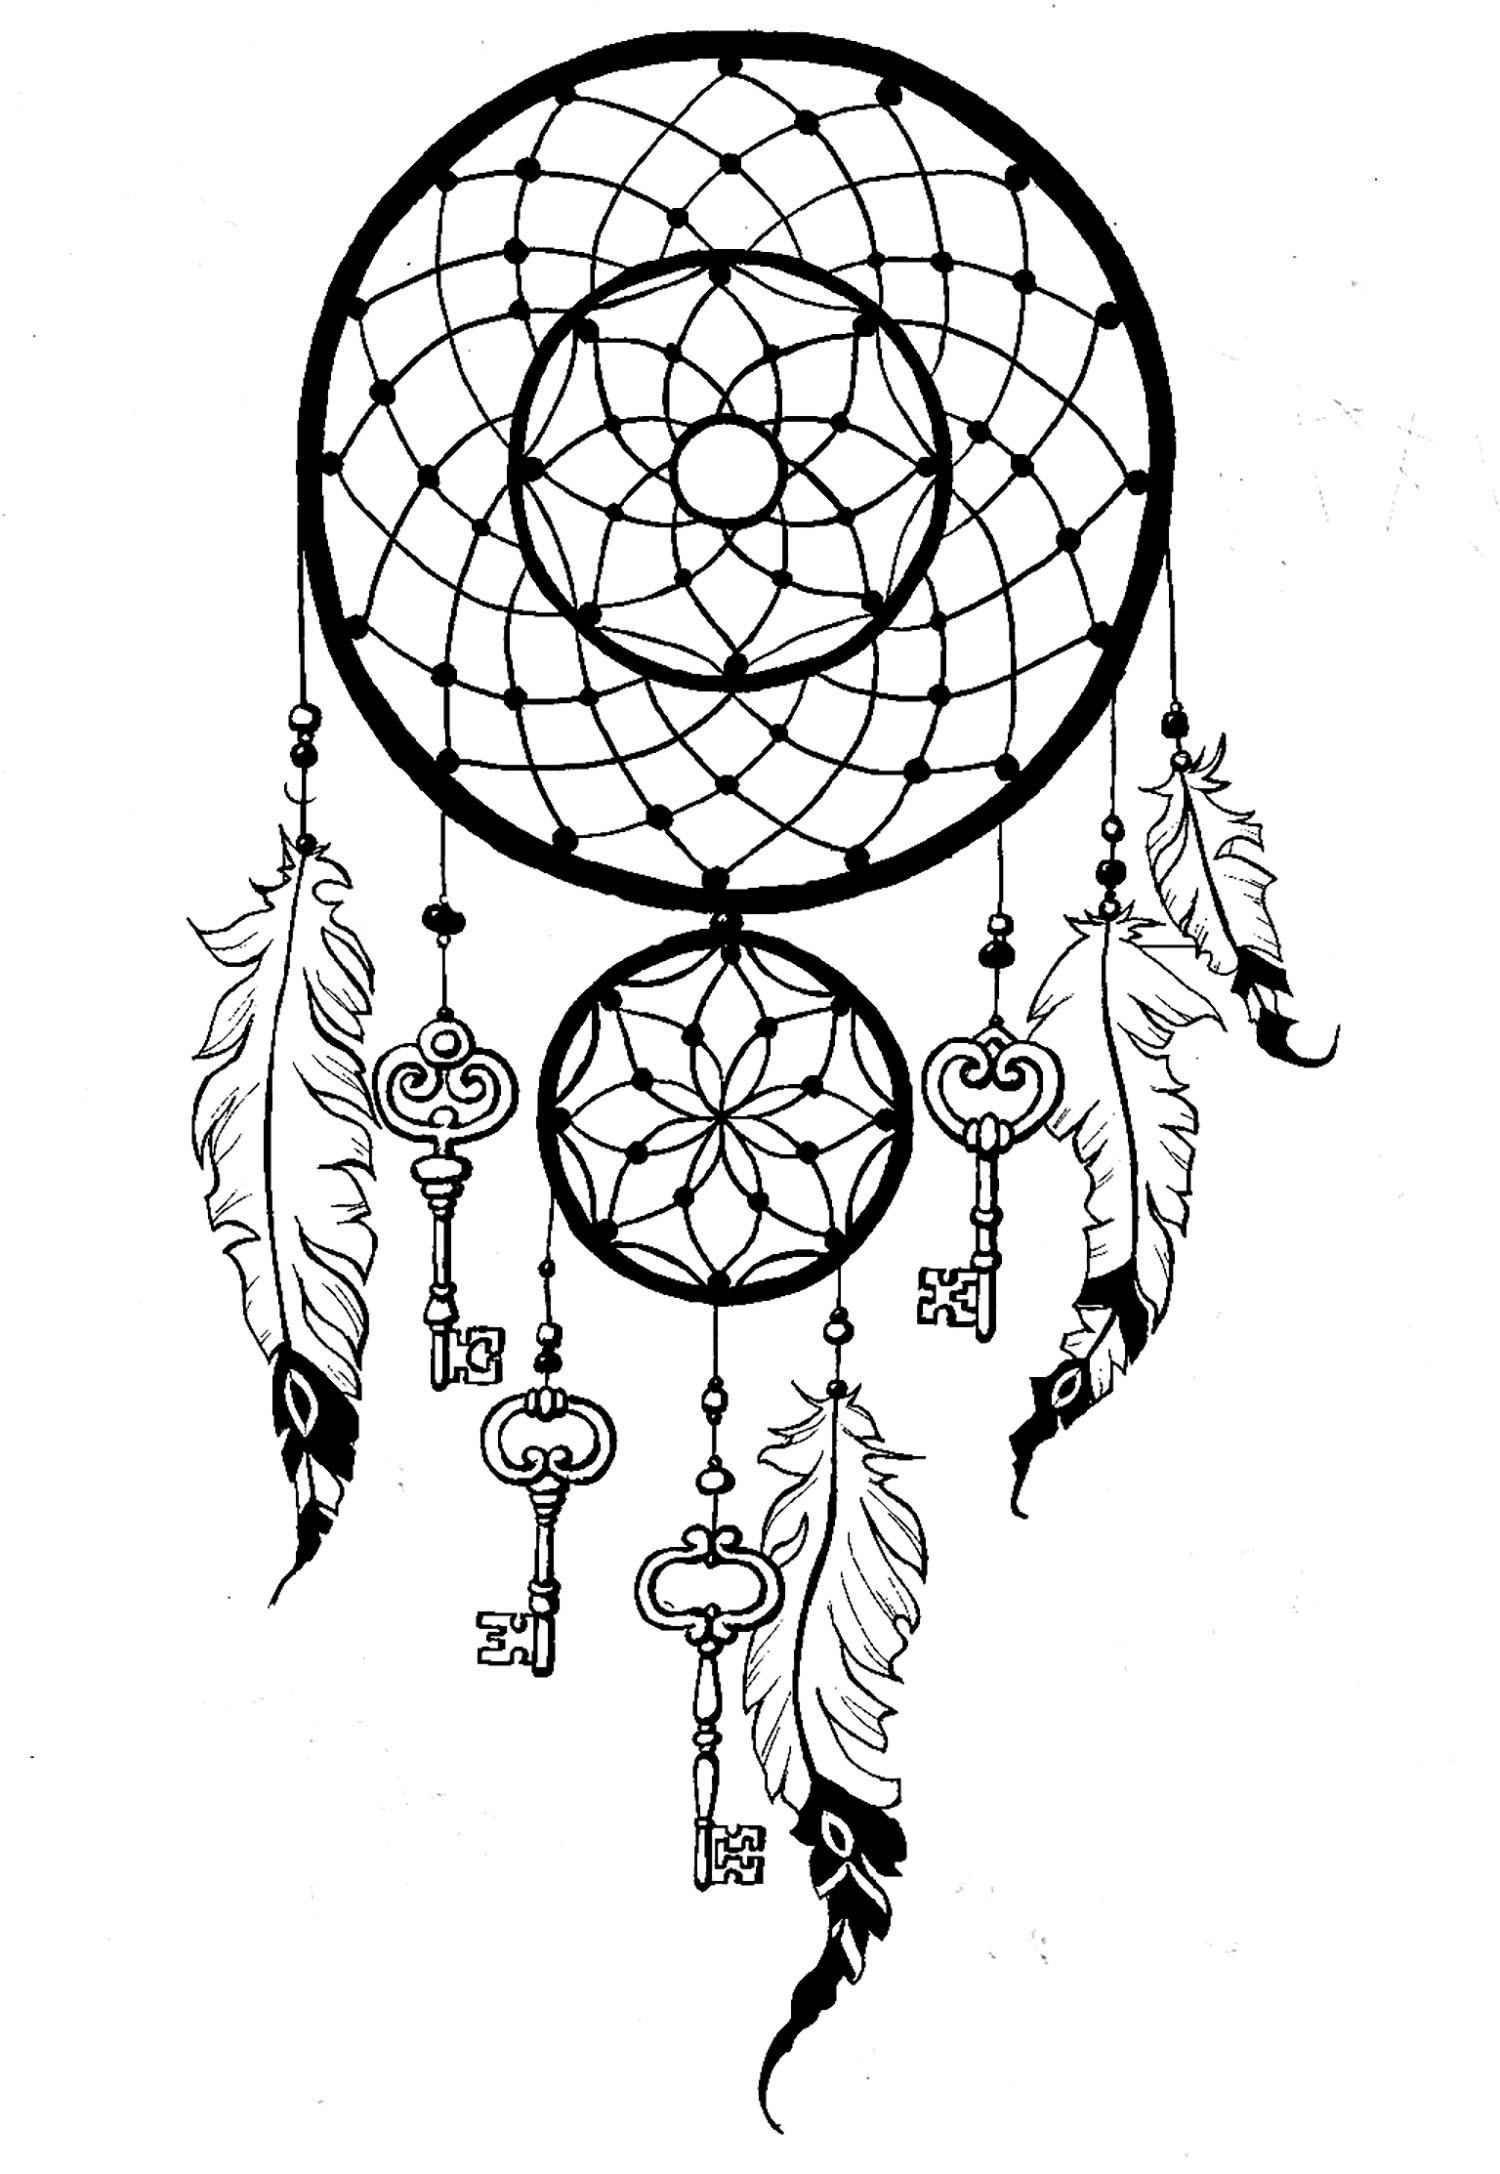 Dreamcatcher Printable Coloring Pages  Dreamcatcher keys Dreamcatchers Adult Coloring Pages